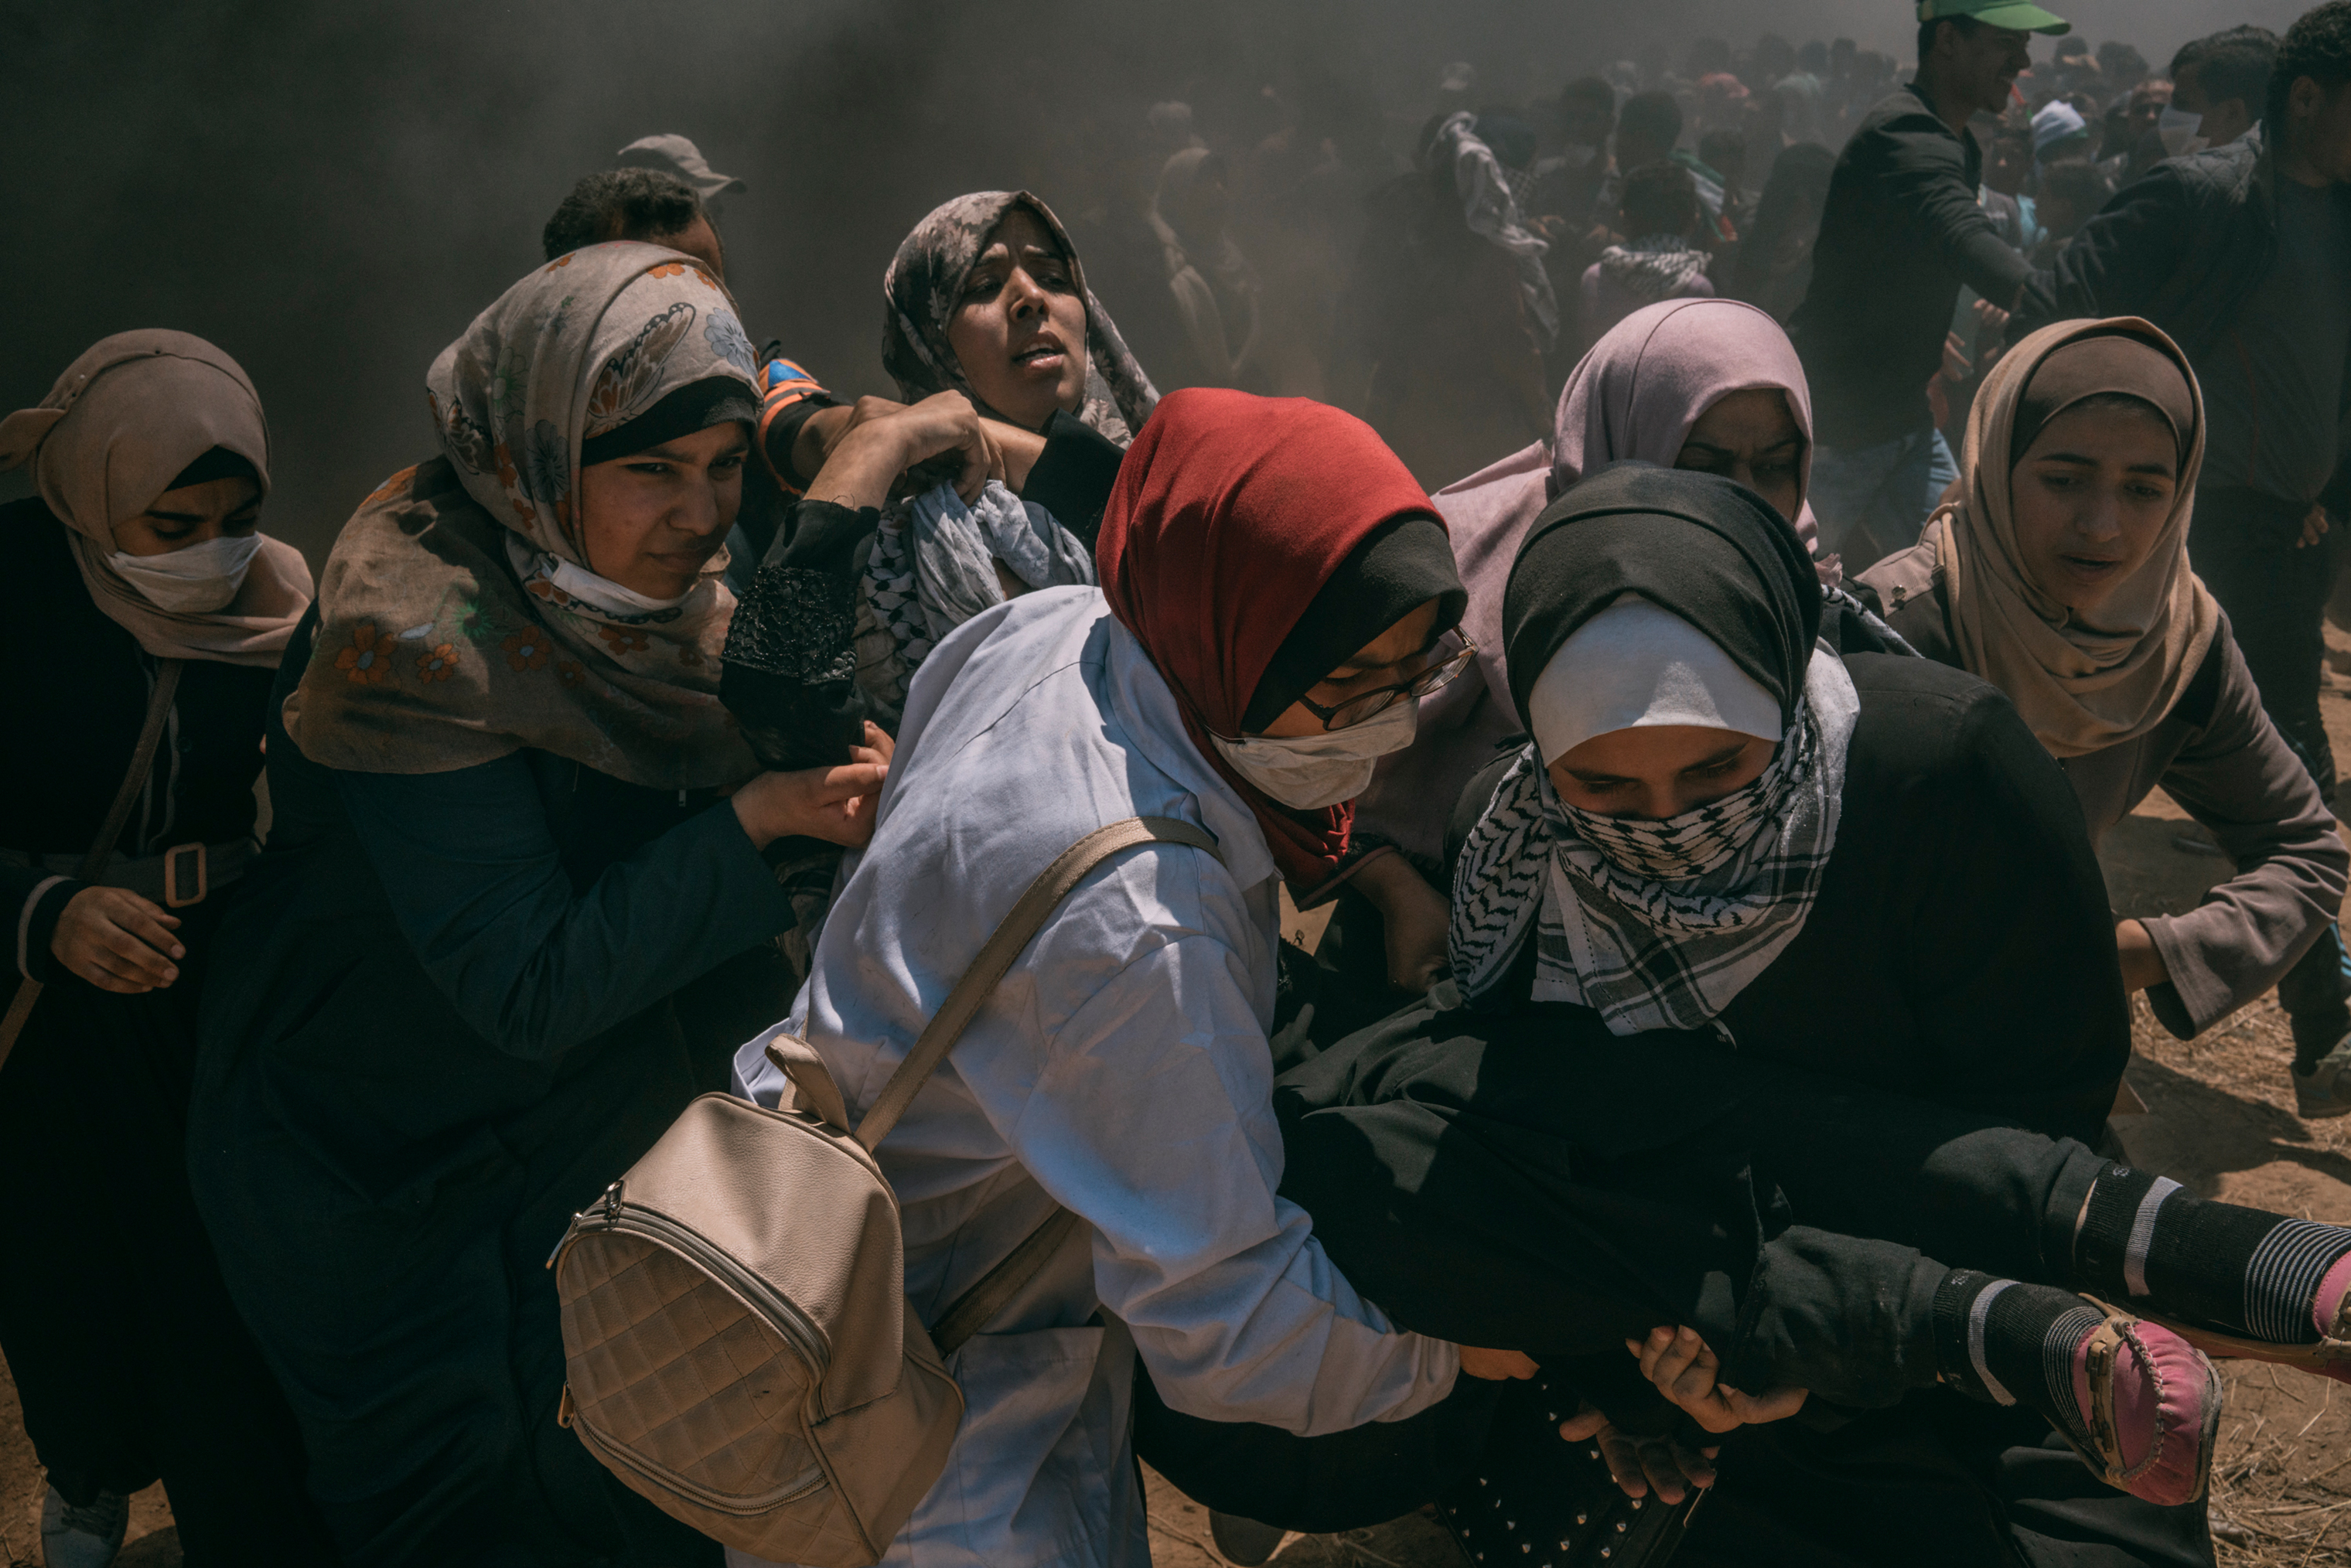 A wounded woman is evacuated by other women after she was injured in the head during the protest along the Gaza-Israel border.